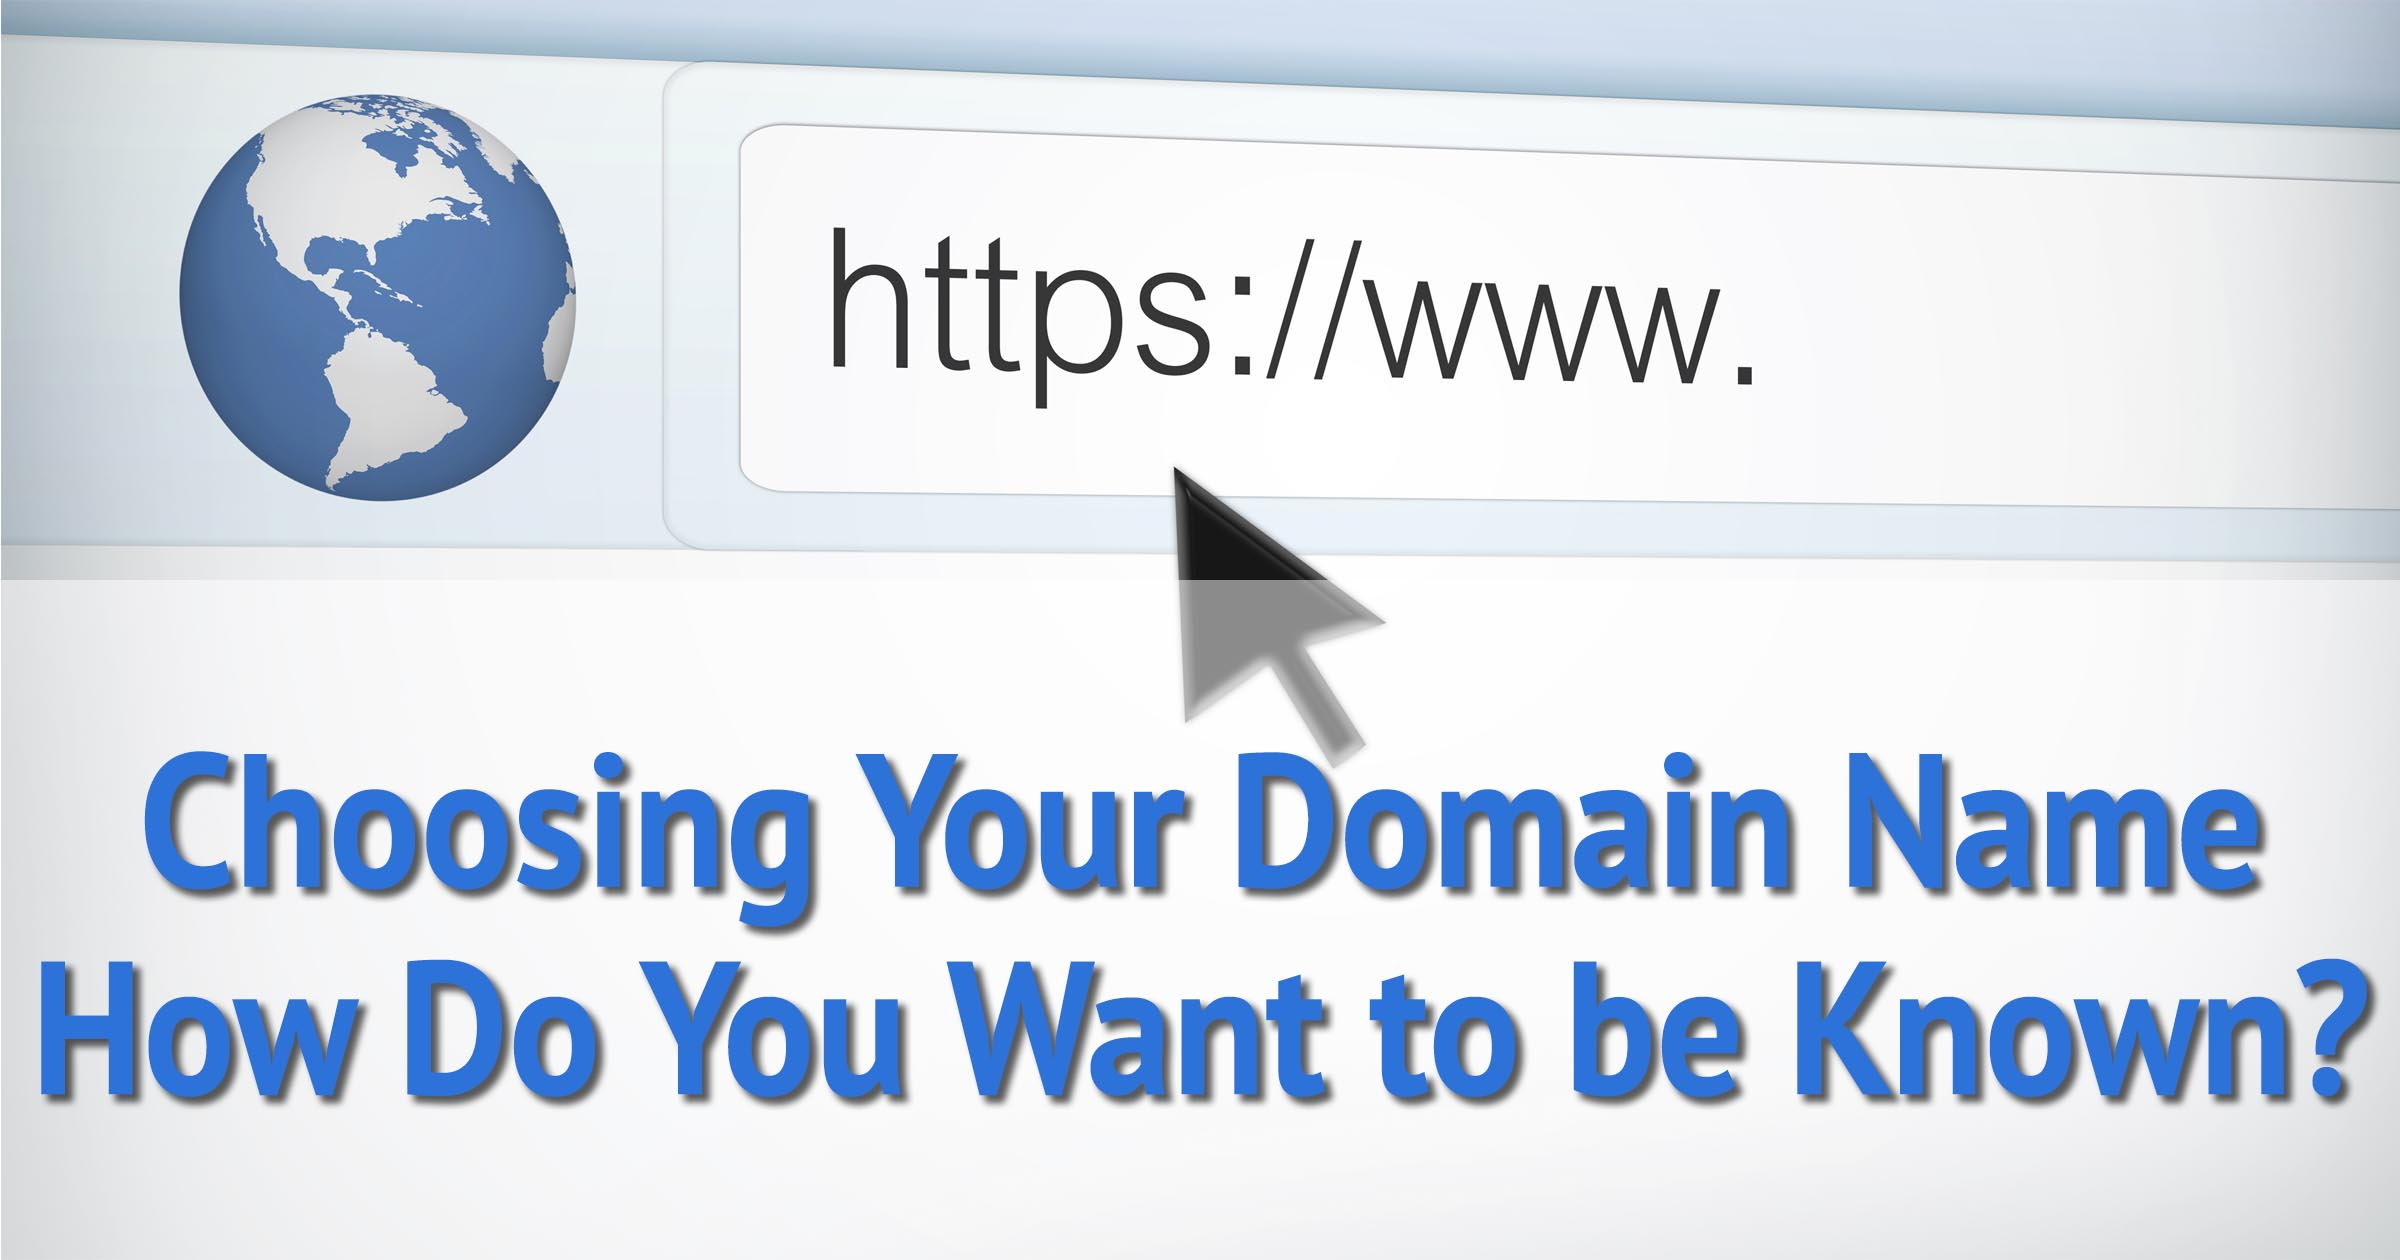 Choosing Your Domain Name - How Do You Want to be Known?